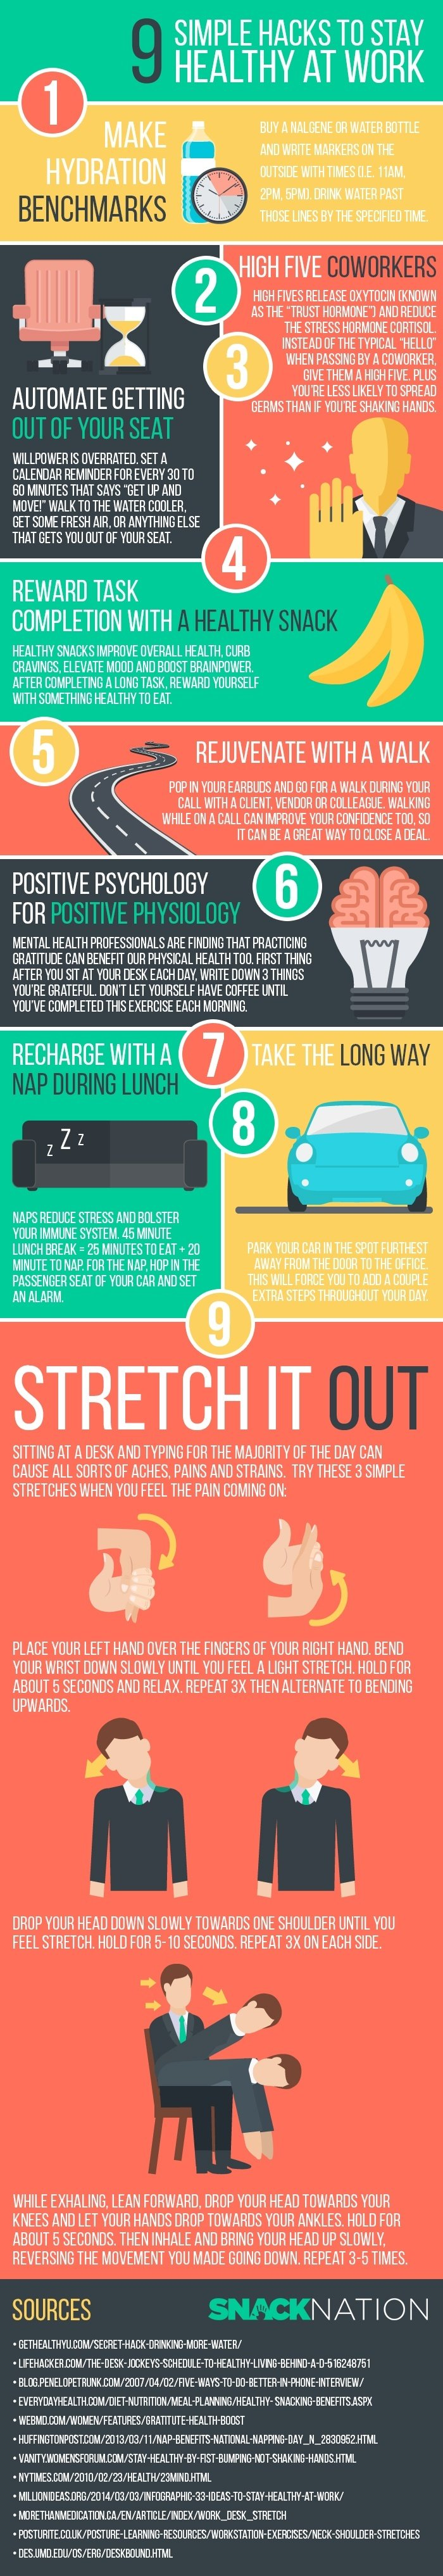 9 Tricks to Staying Healthy at Work [Infographic] - by TINYpulse